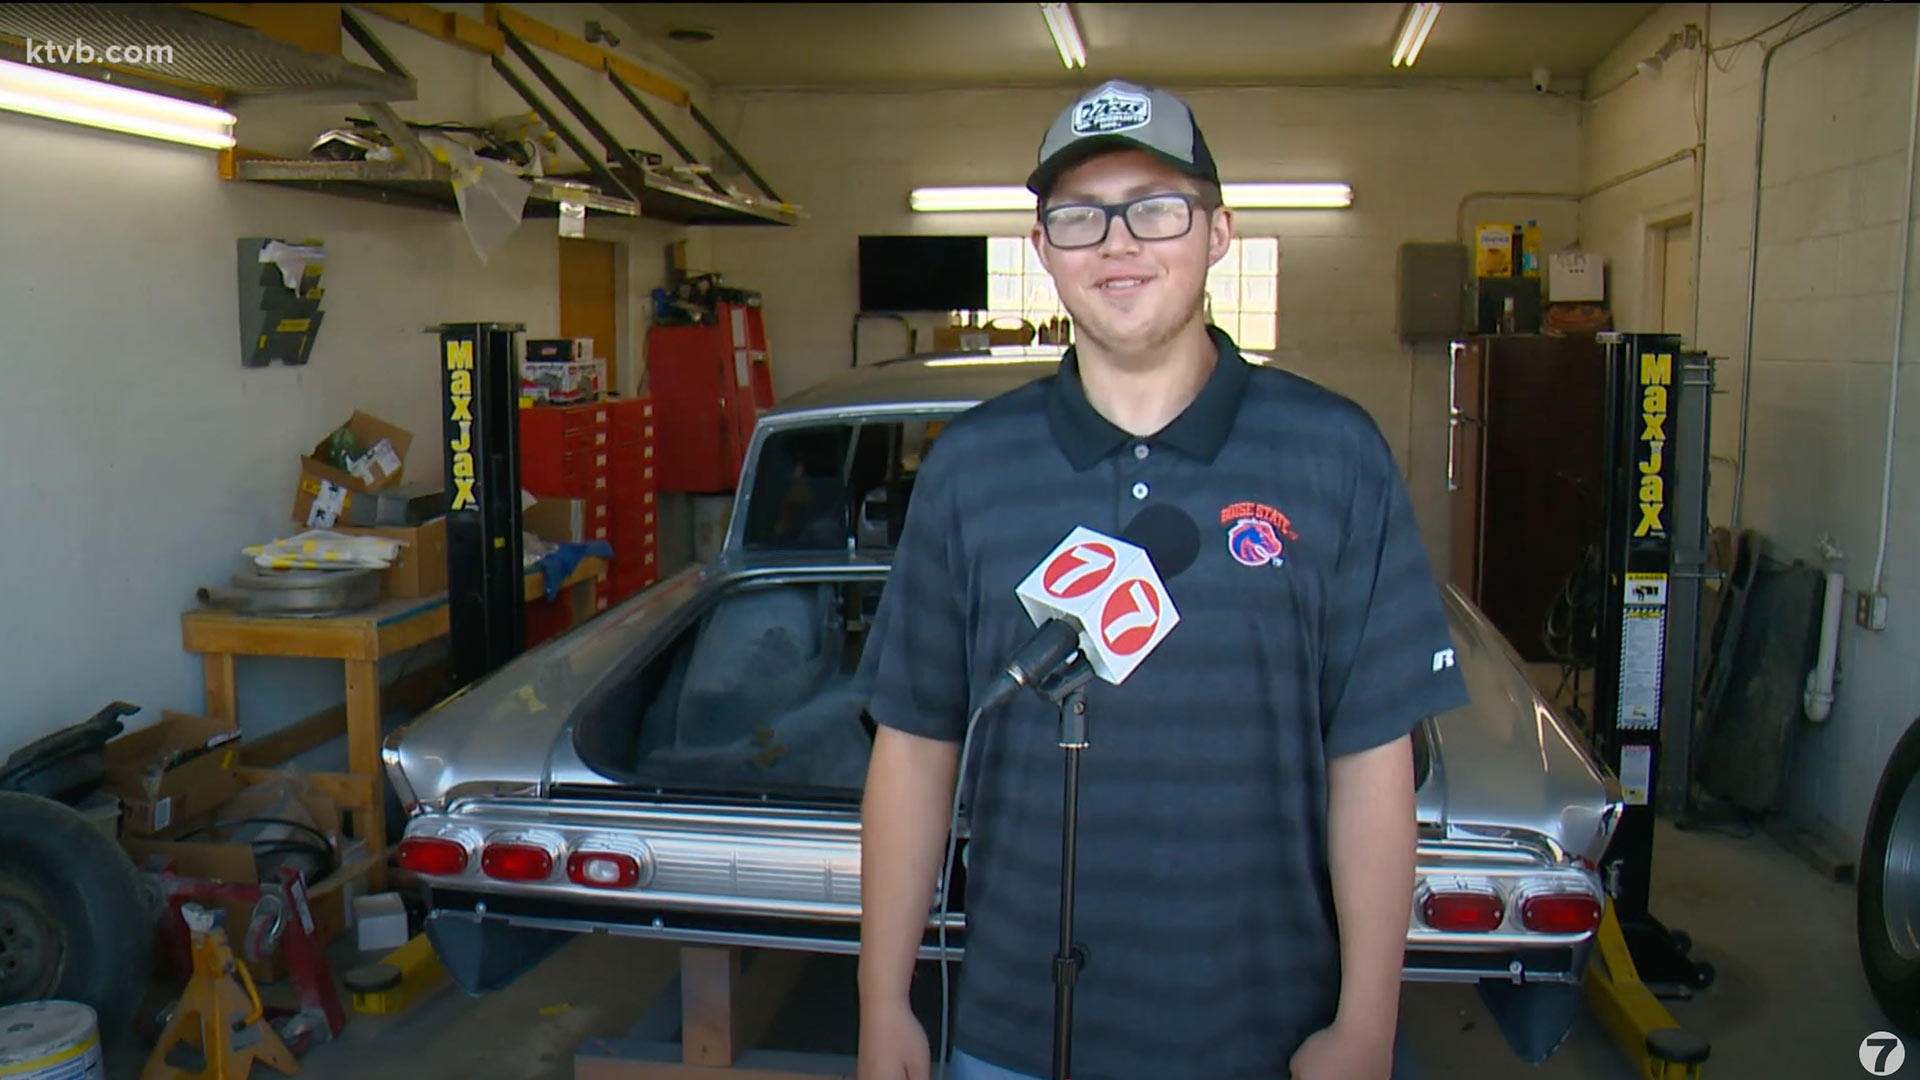 Volunteers Restore 15-Year-Old Boy's Classic Car After He's Diagnosed with Brain Tumor